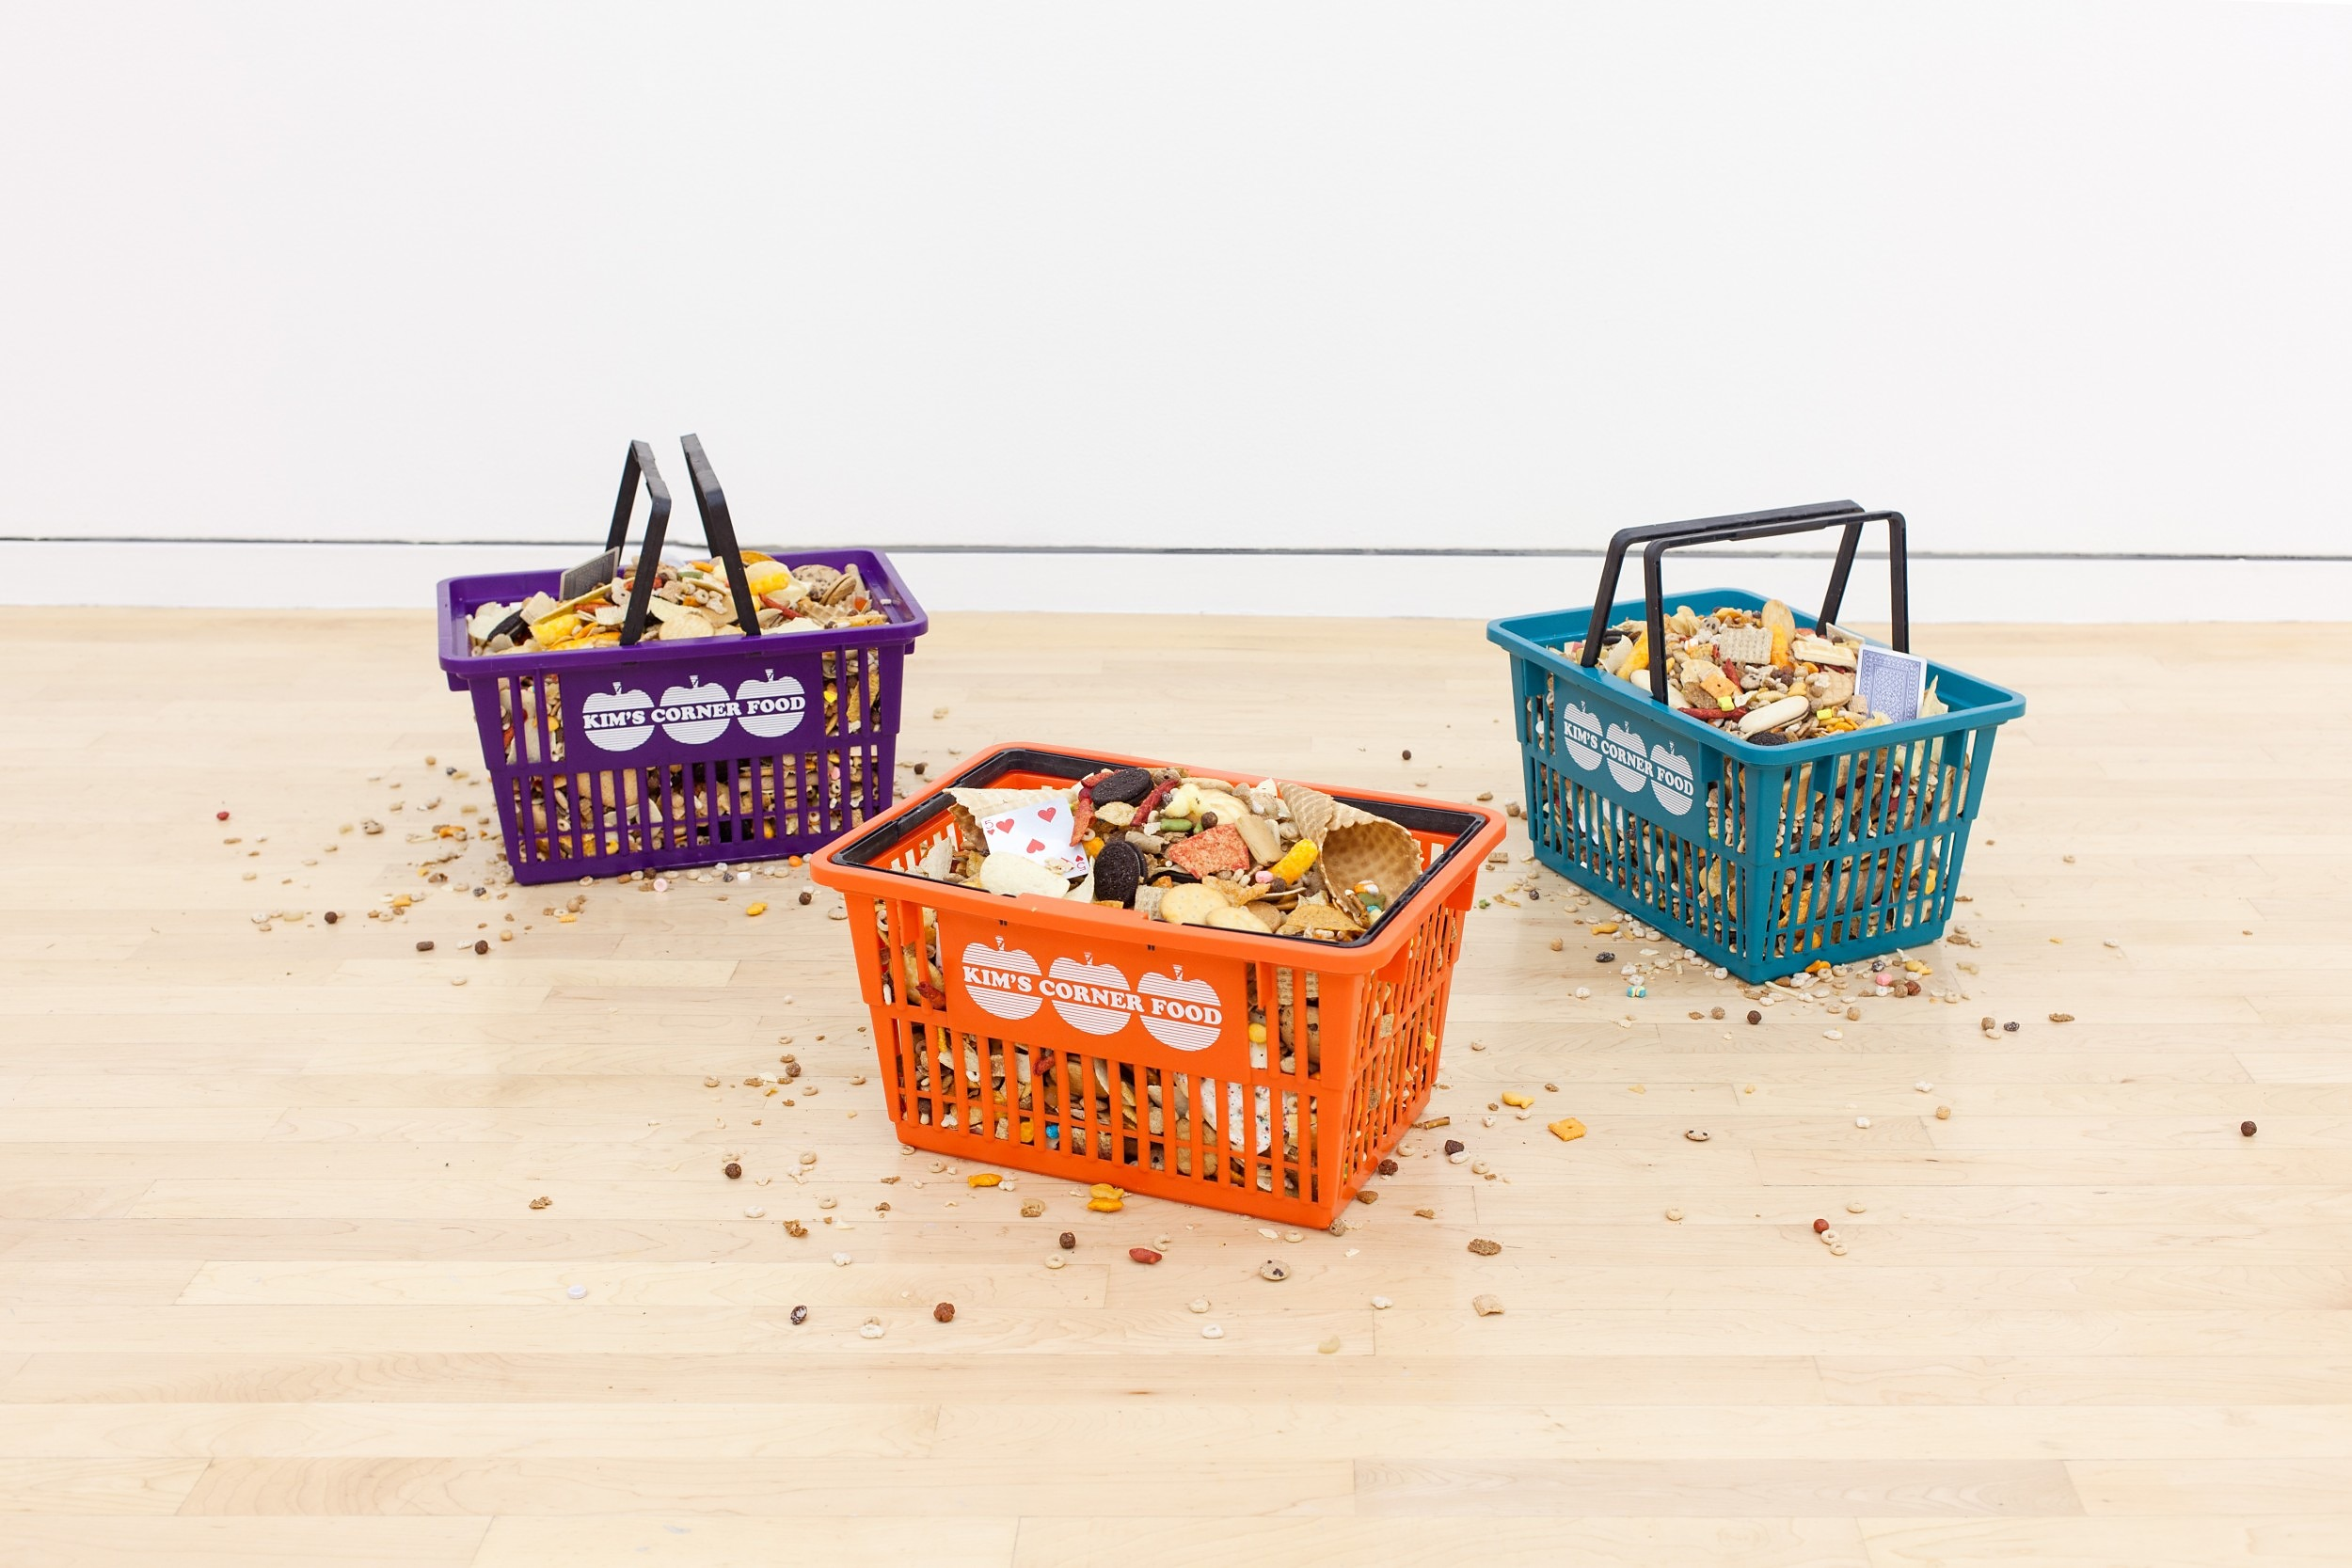 Earn like a dog, spend like a king, 2016 Screen printed plastic shopping baskets, unpackaged merchandise from Kim's Corner Food, 1371 W Estes Ave, Chicago, IL Installation view, Lake Cream, Block Museum, Evanston, IL, May–Jun 2016